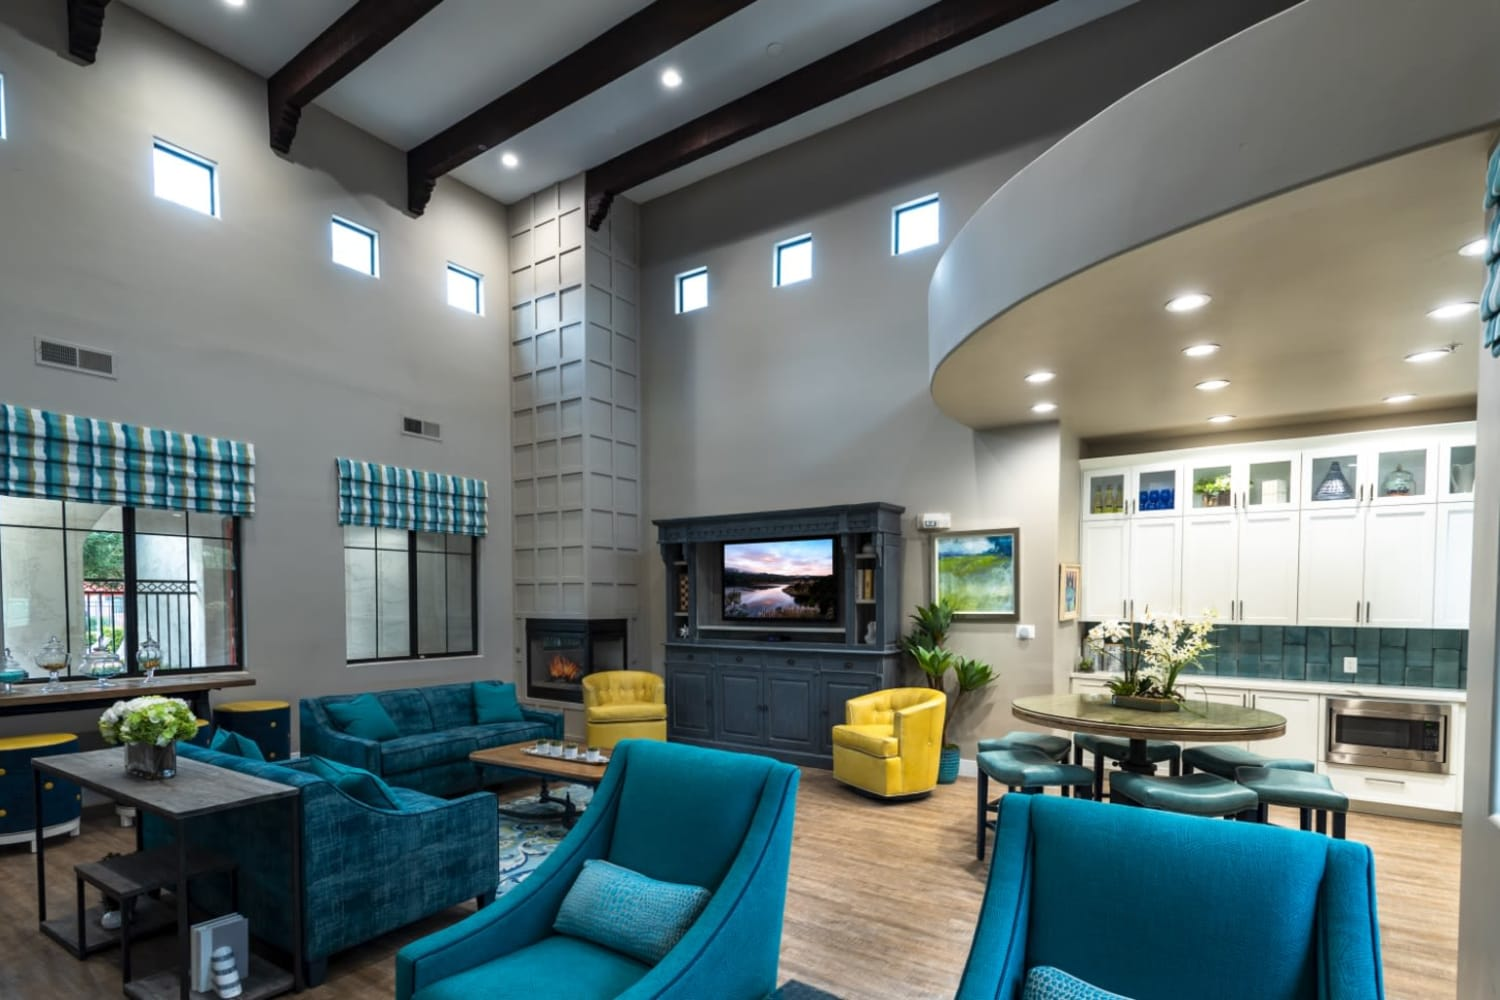 Dobson 2222 in Chandler, Arizona, offers a clubhouse television viewing area